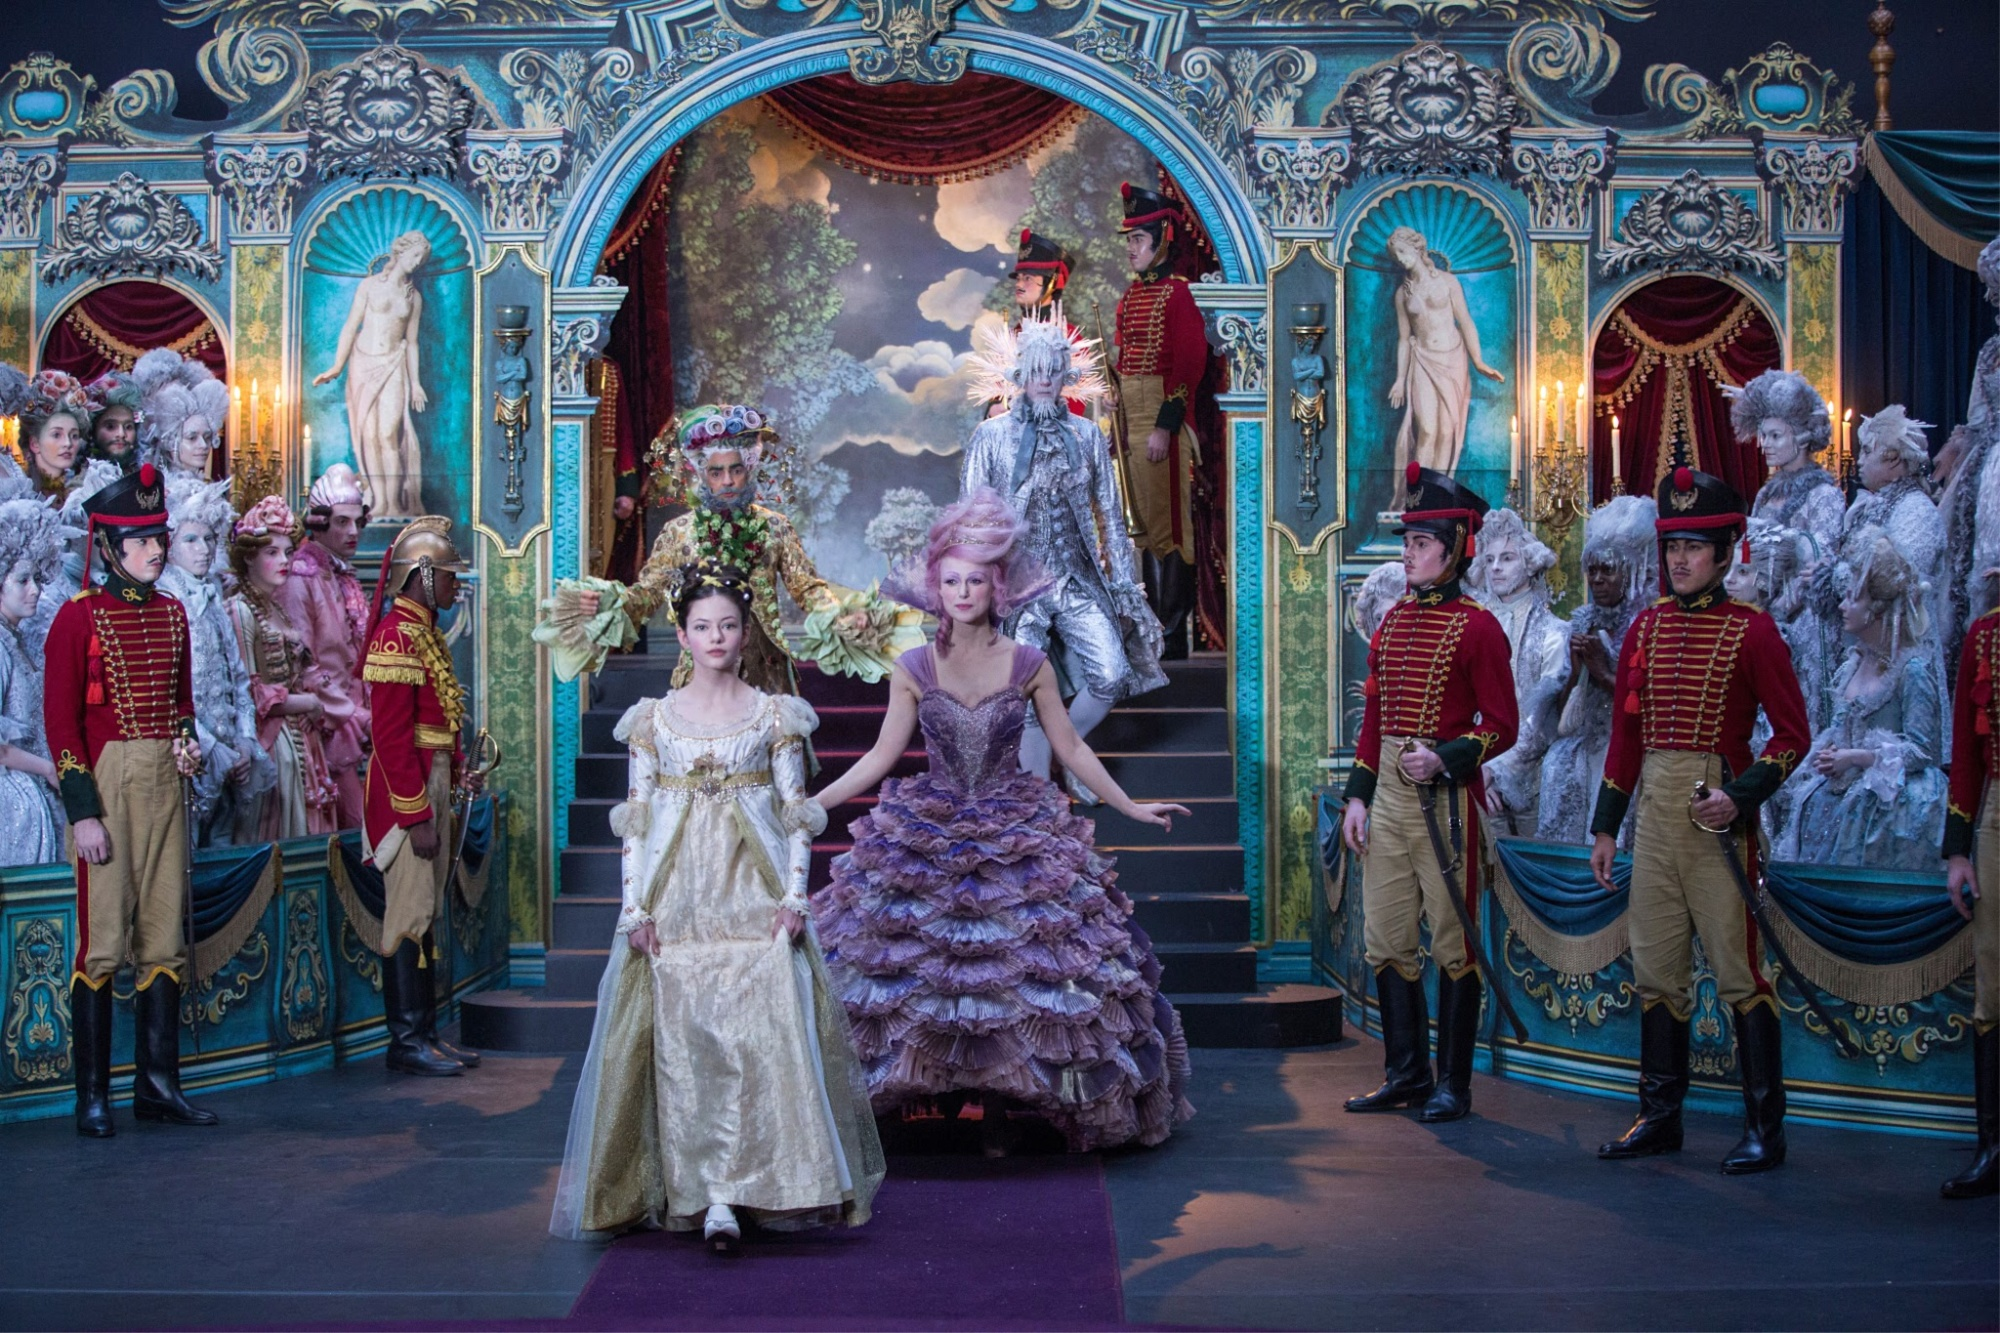 The Nutcracker and the Four Realms ballroom scene